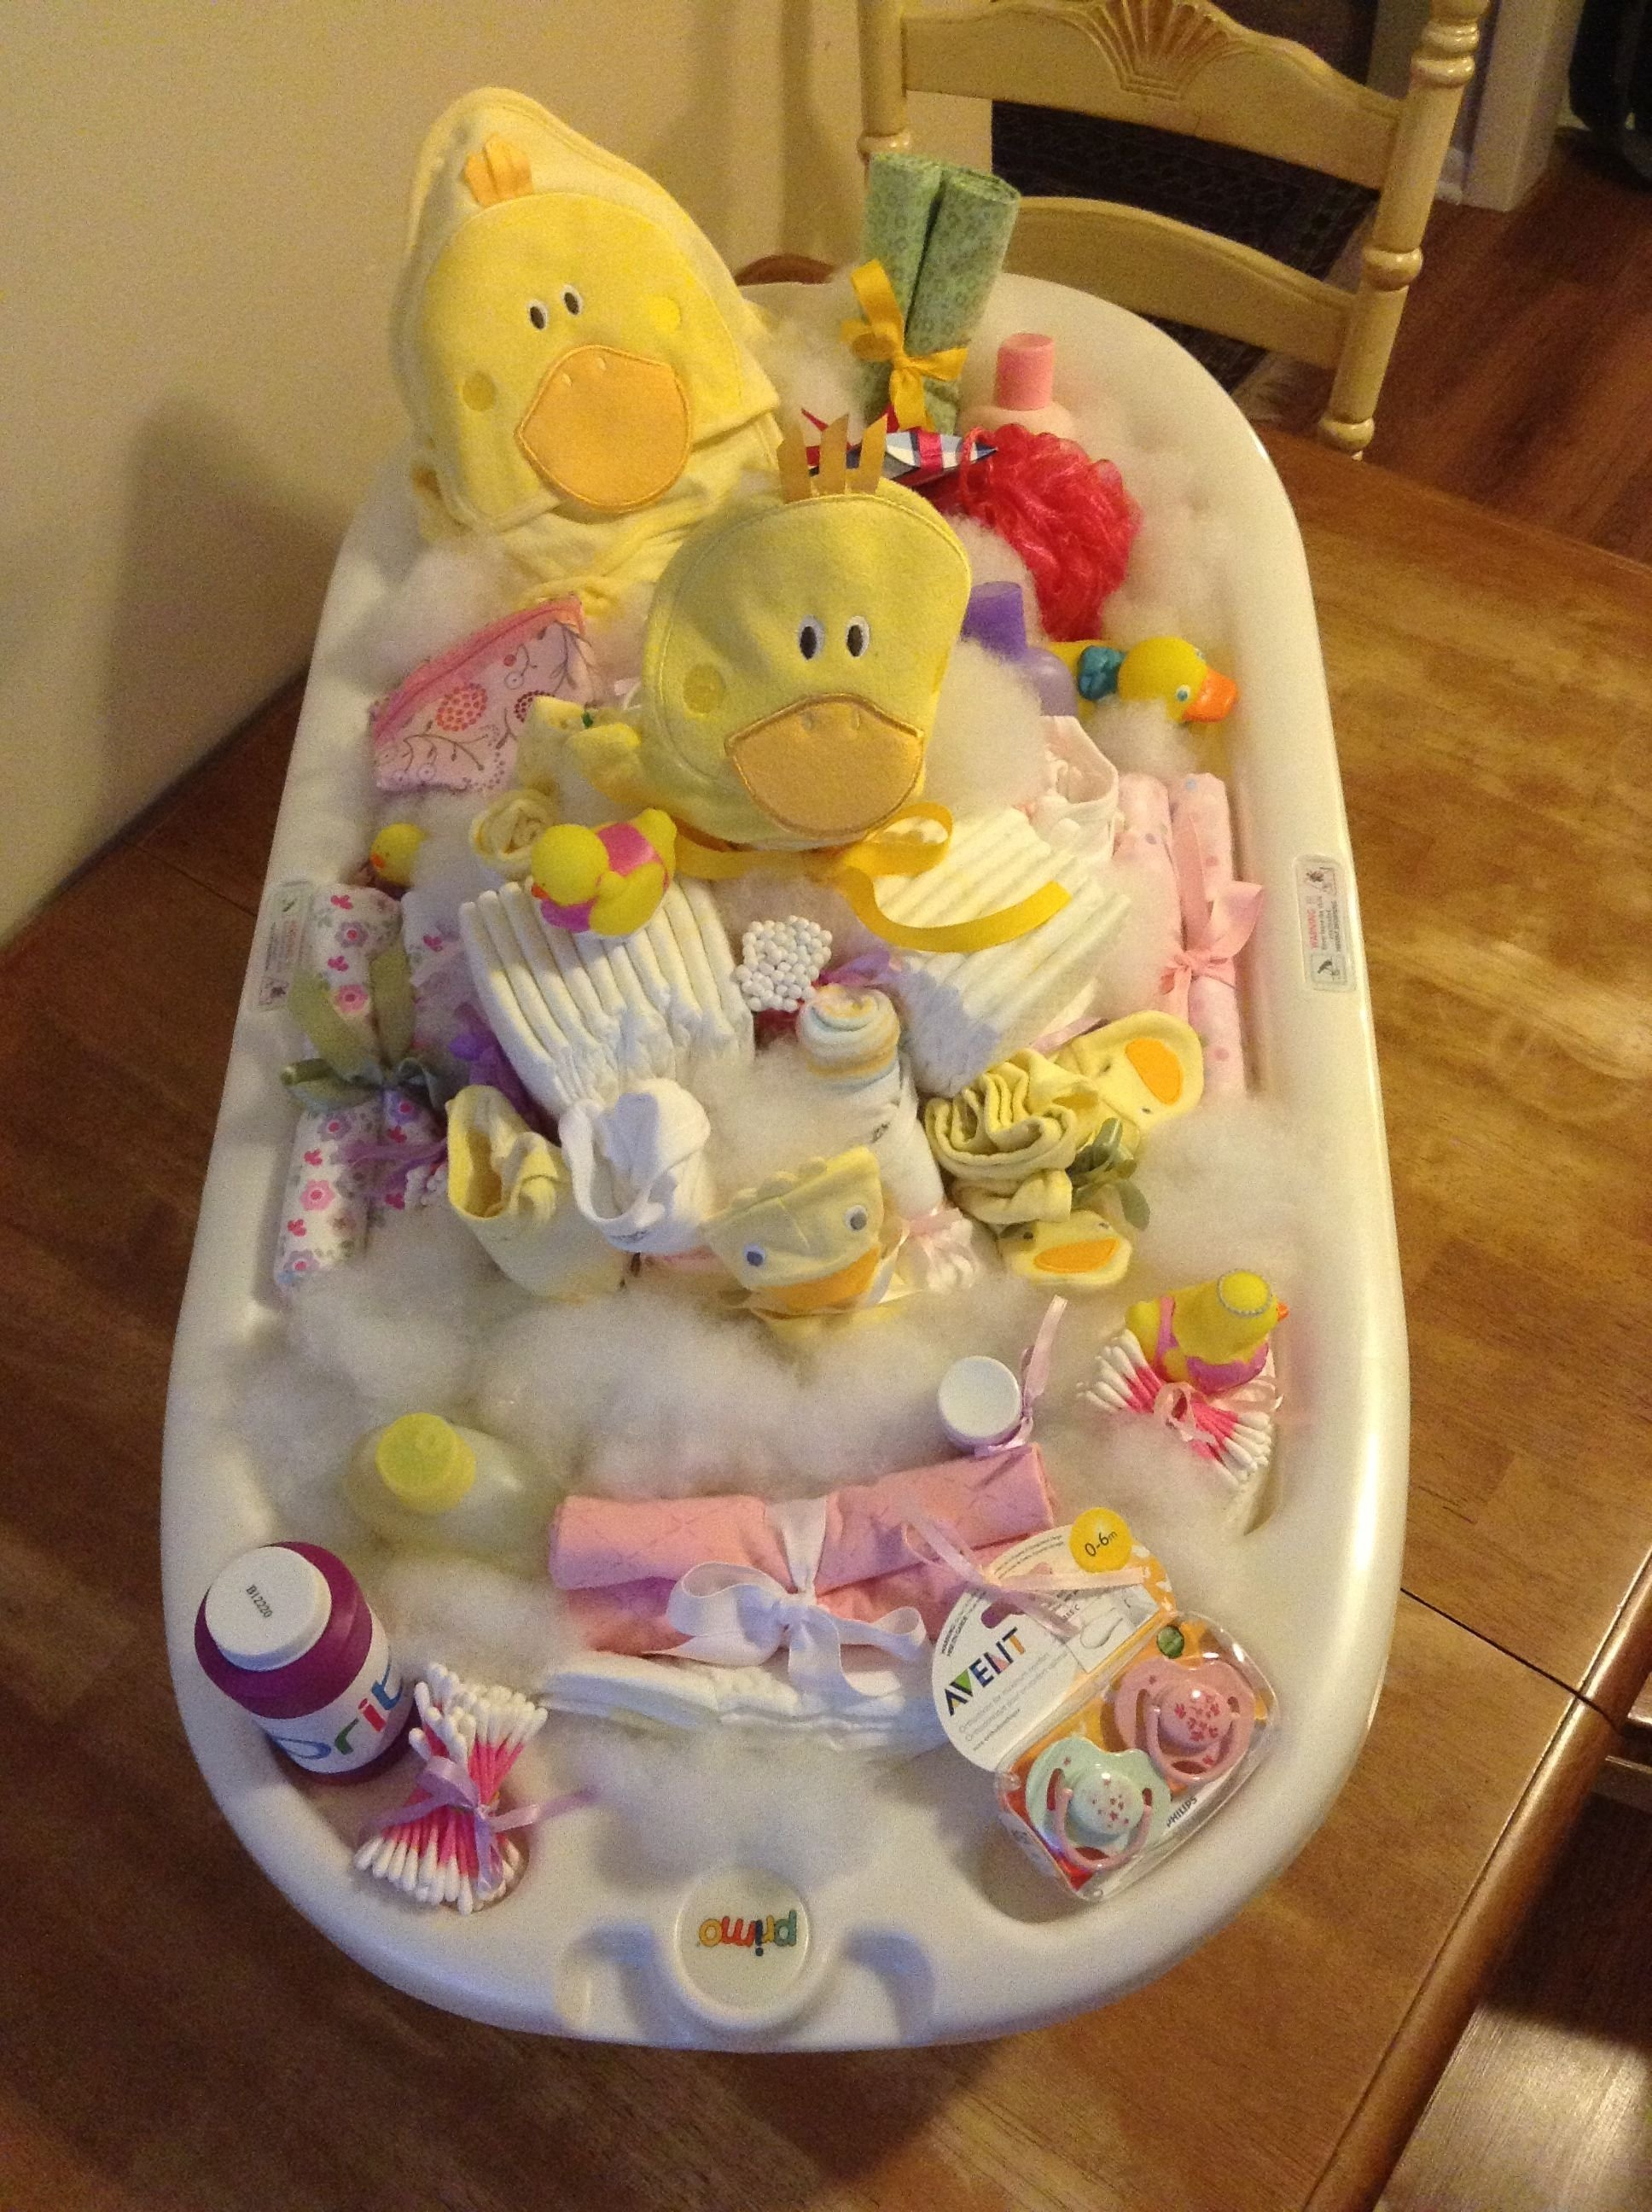 10 Spectacular Cheap Baby Shower Gift Ideas sweet baby shower gift the base of the tub is filled with diapers